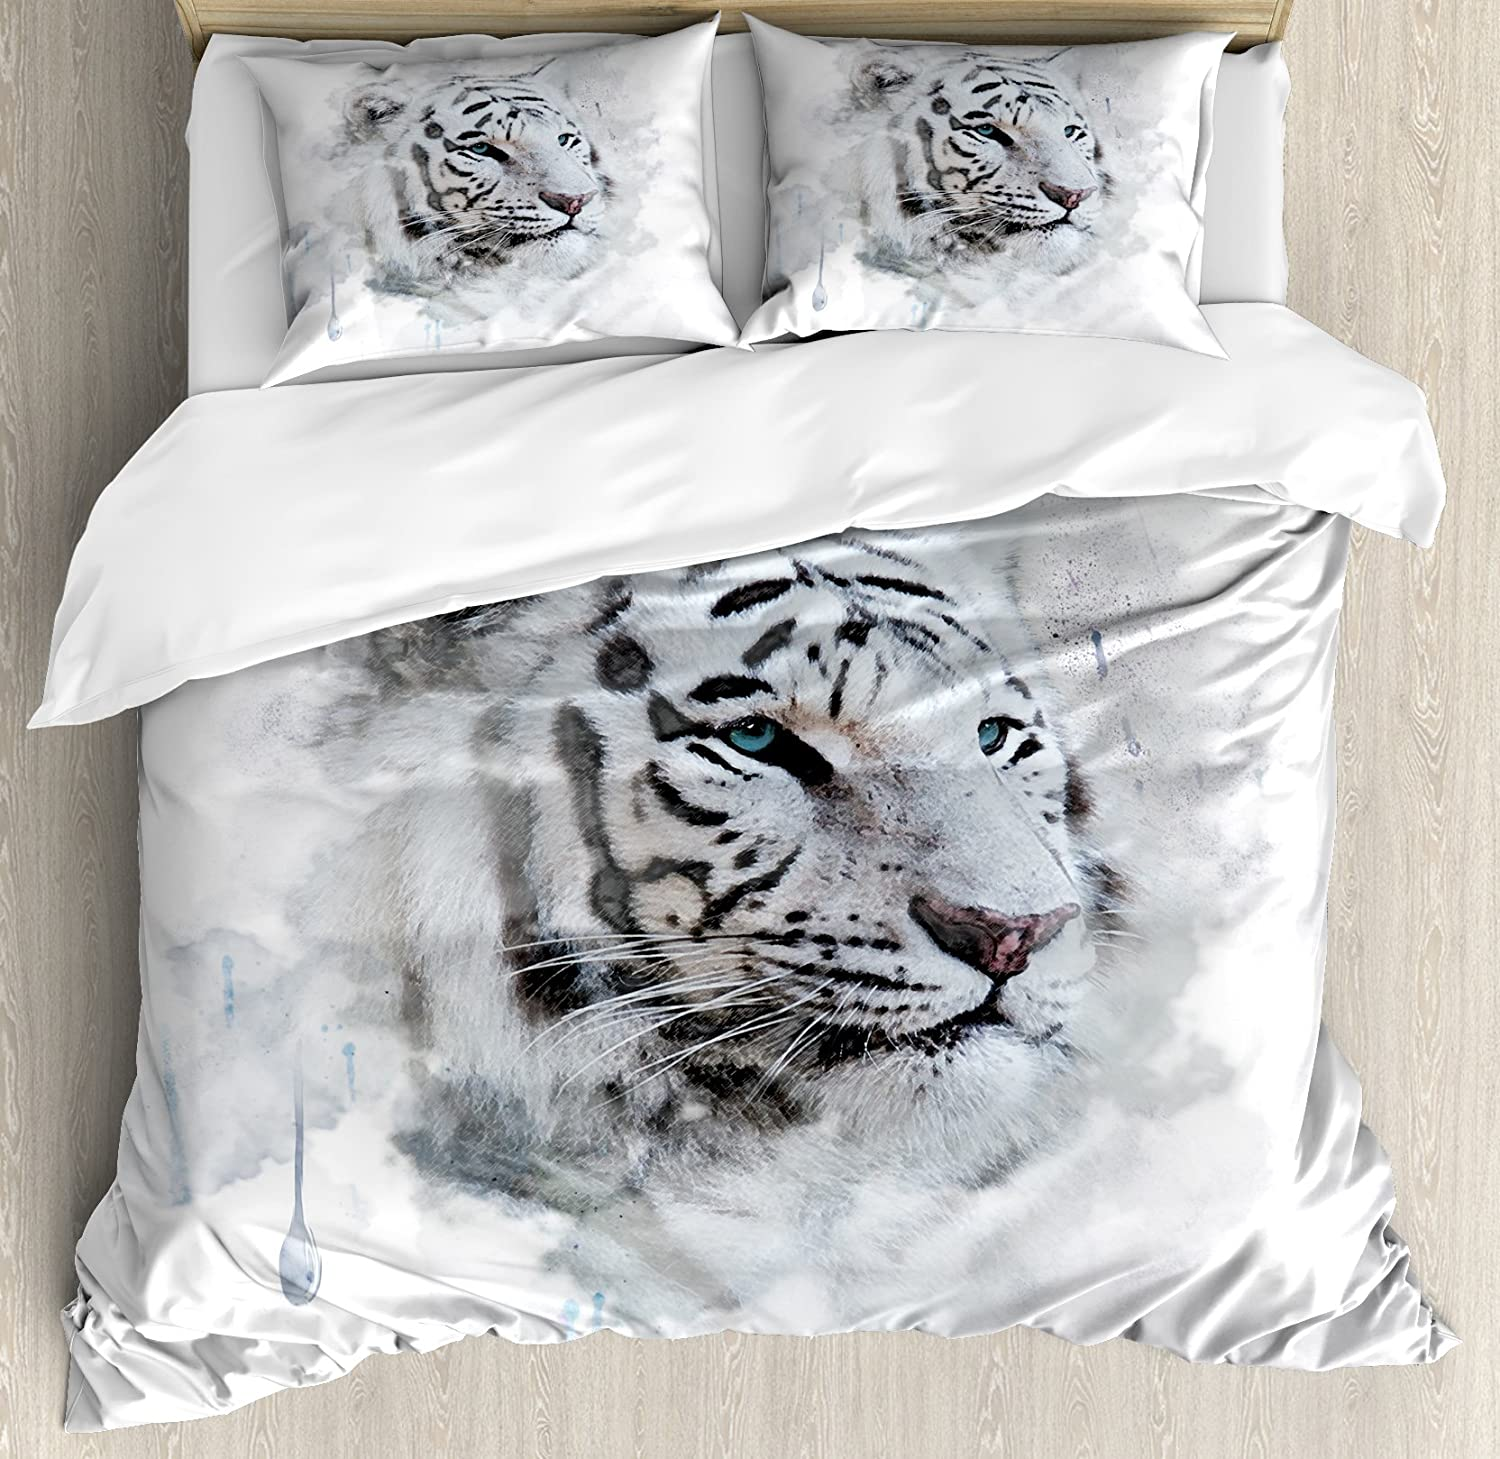 Ambesonne Animal Duvet Cover Set, Portrait of a White Tiger Wild Nature Predator Watercolor Splashes, Decorative 3 Piece Bedding Set with 2 Pillow Shams, Queen Size, White Black